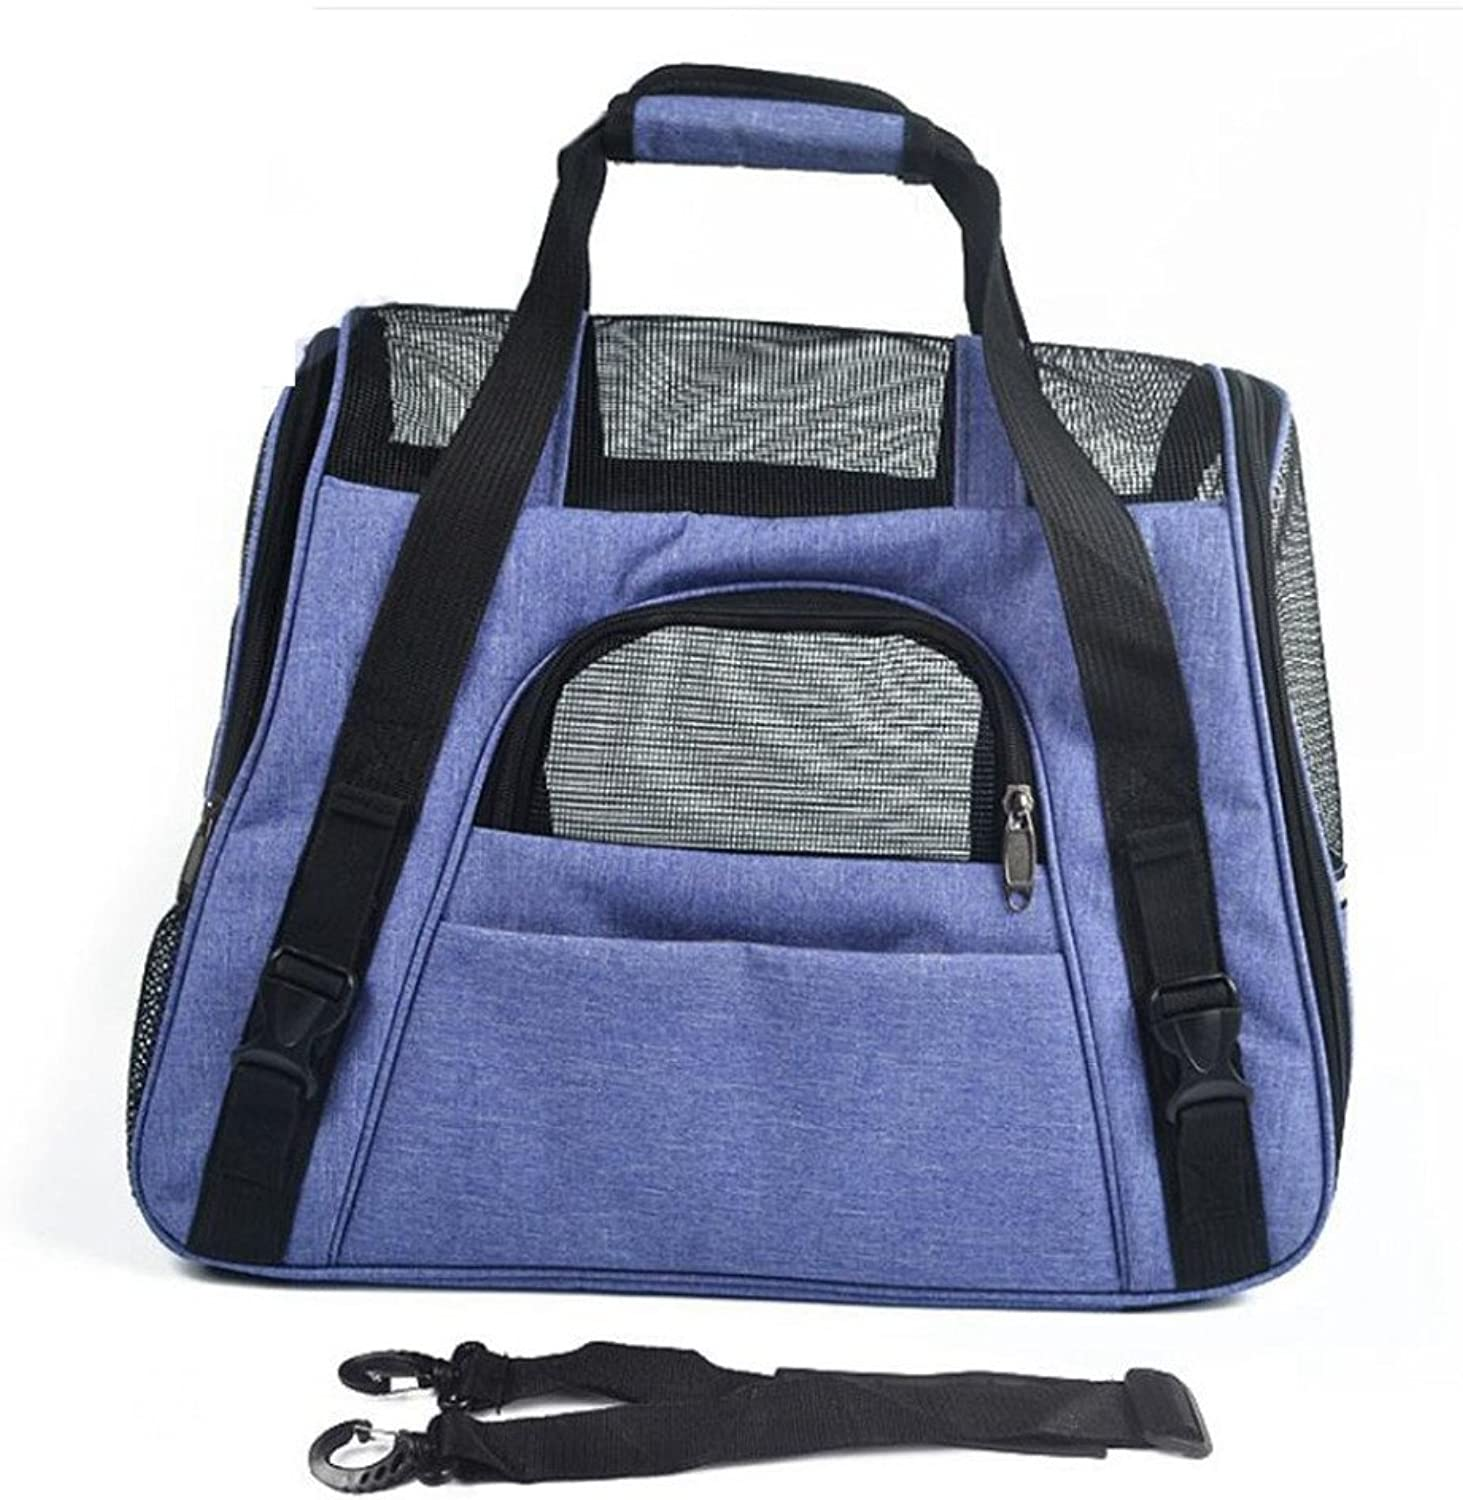 Dixinla Pet Carrier Backpack Pets out Pack Oxford cloth out Portable pet bag breathable doggy folding bag 46x23x35cm